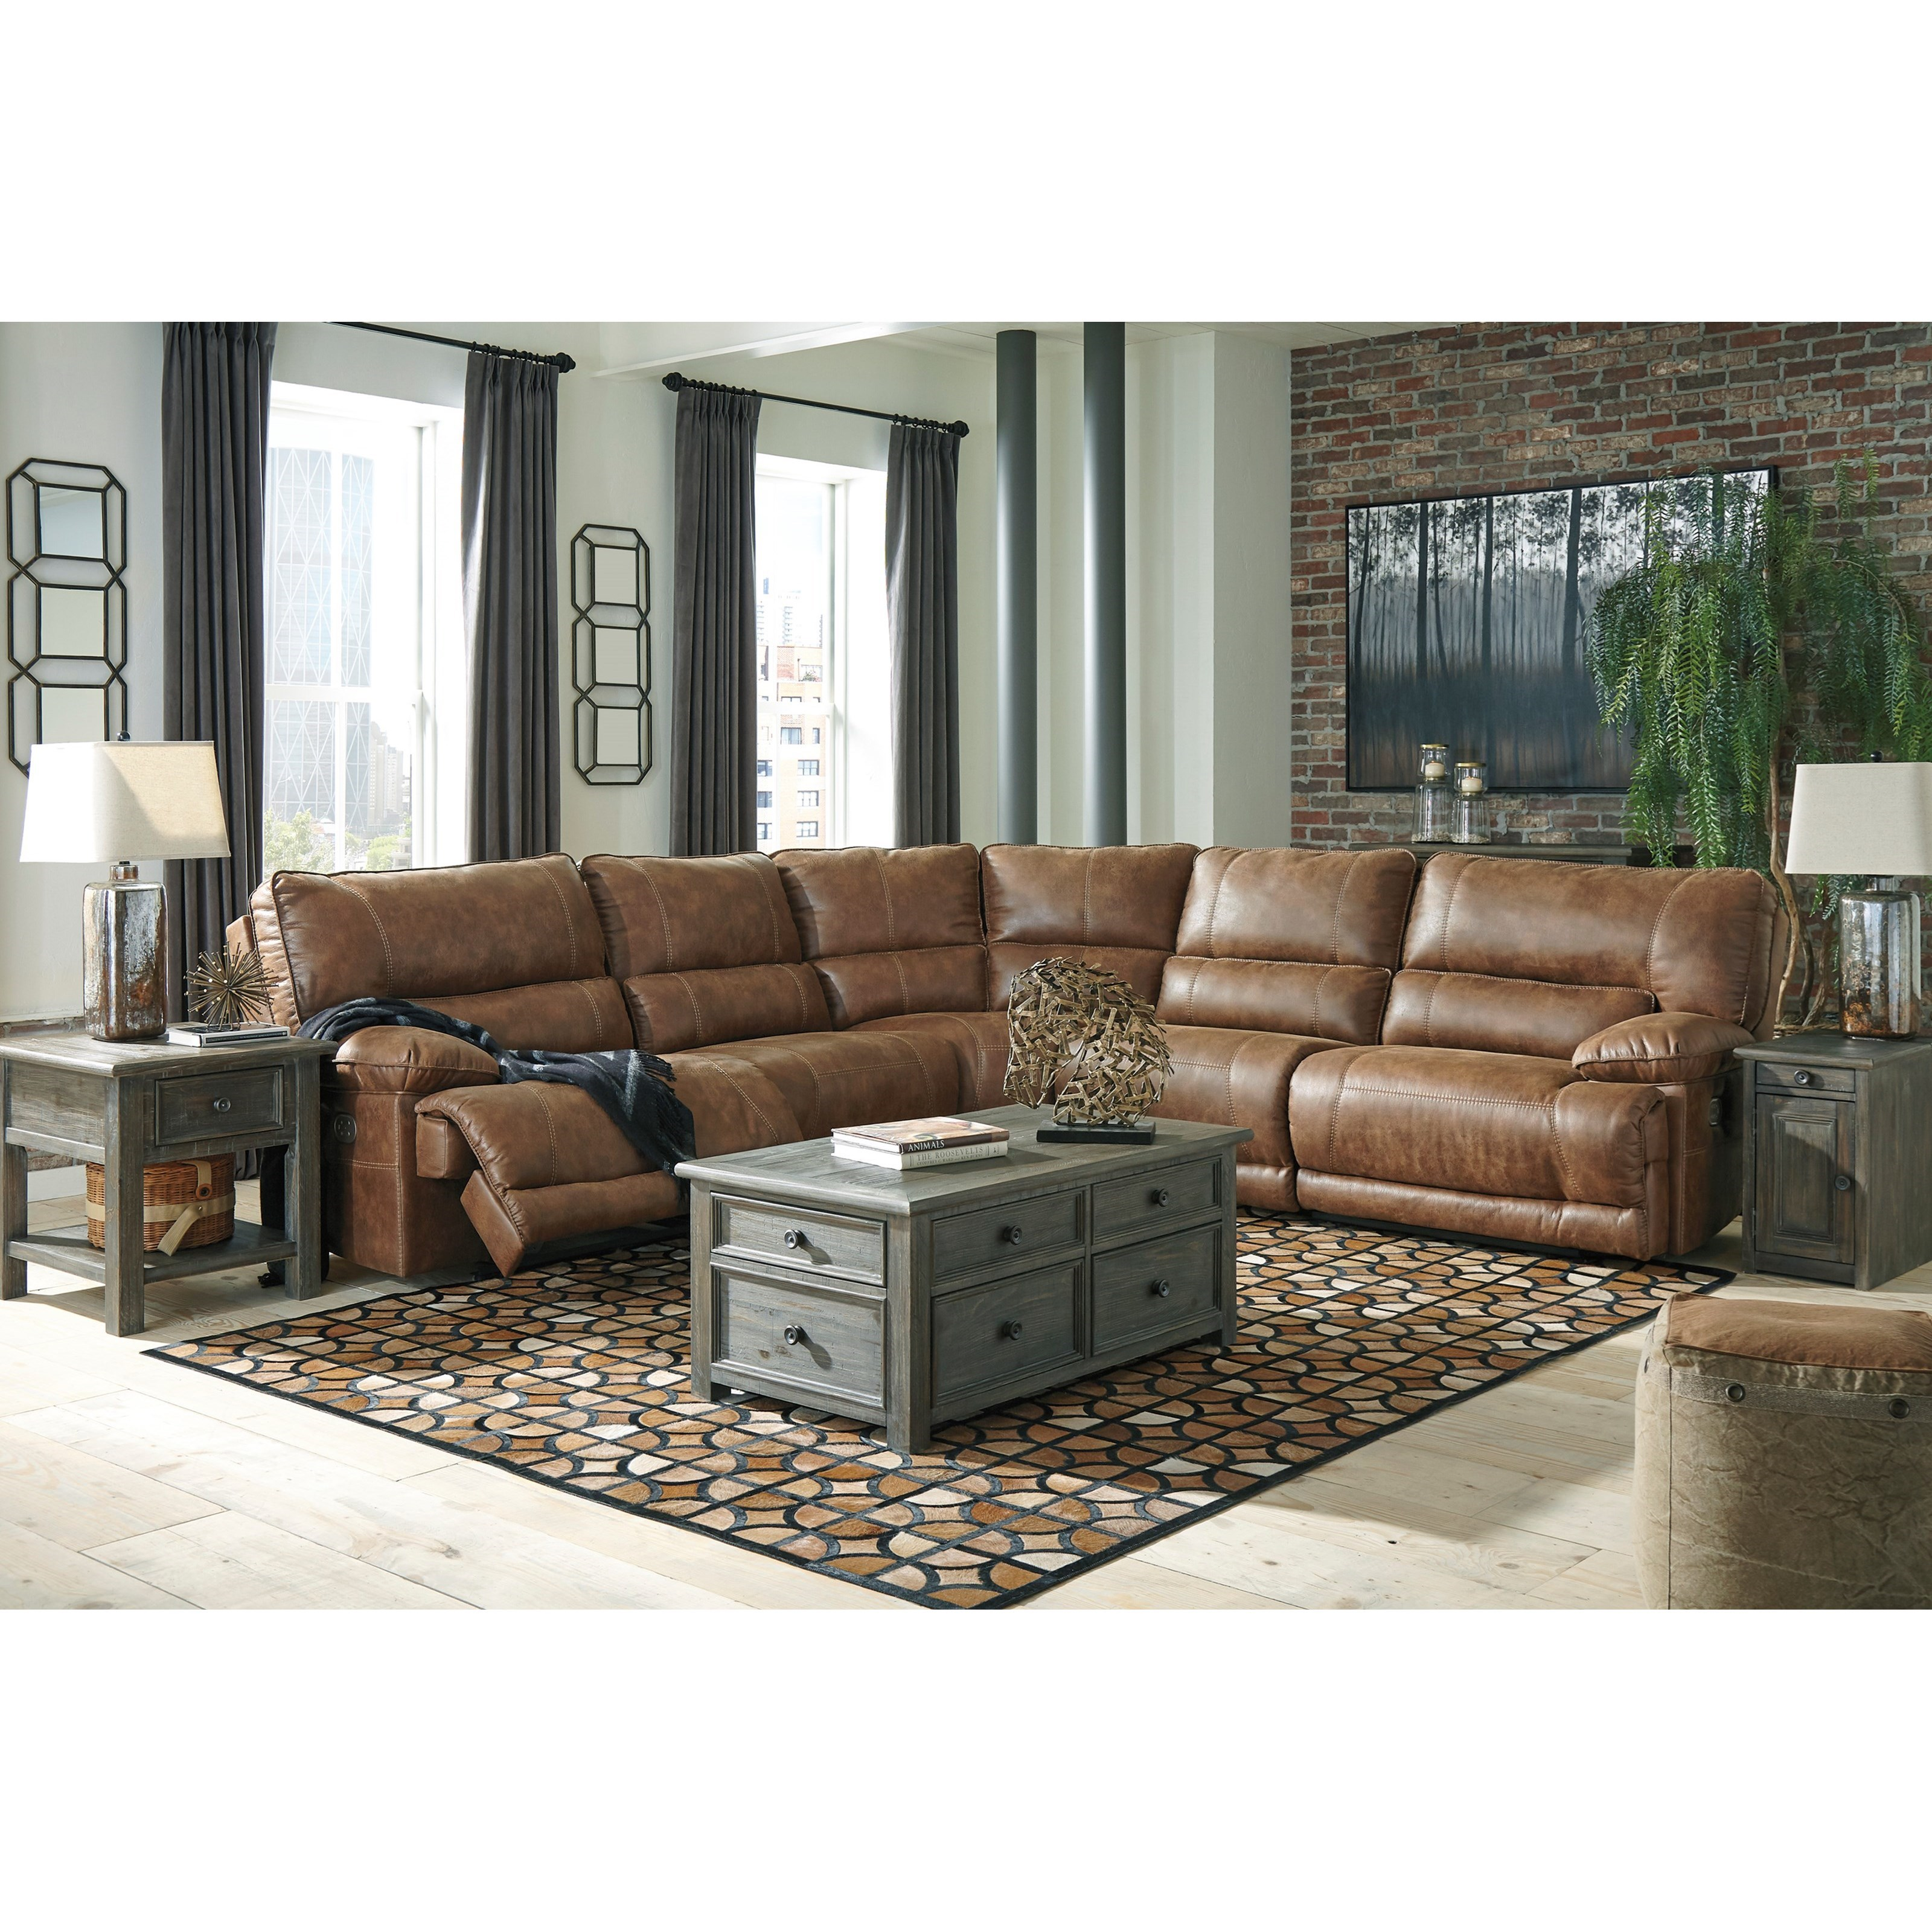 Ashley City Furniture: Signature Design By Ashley Thurles Power Reclining